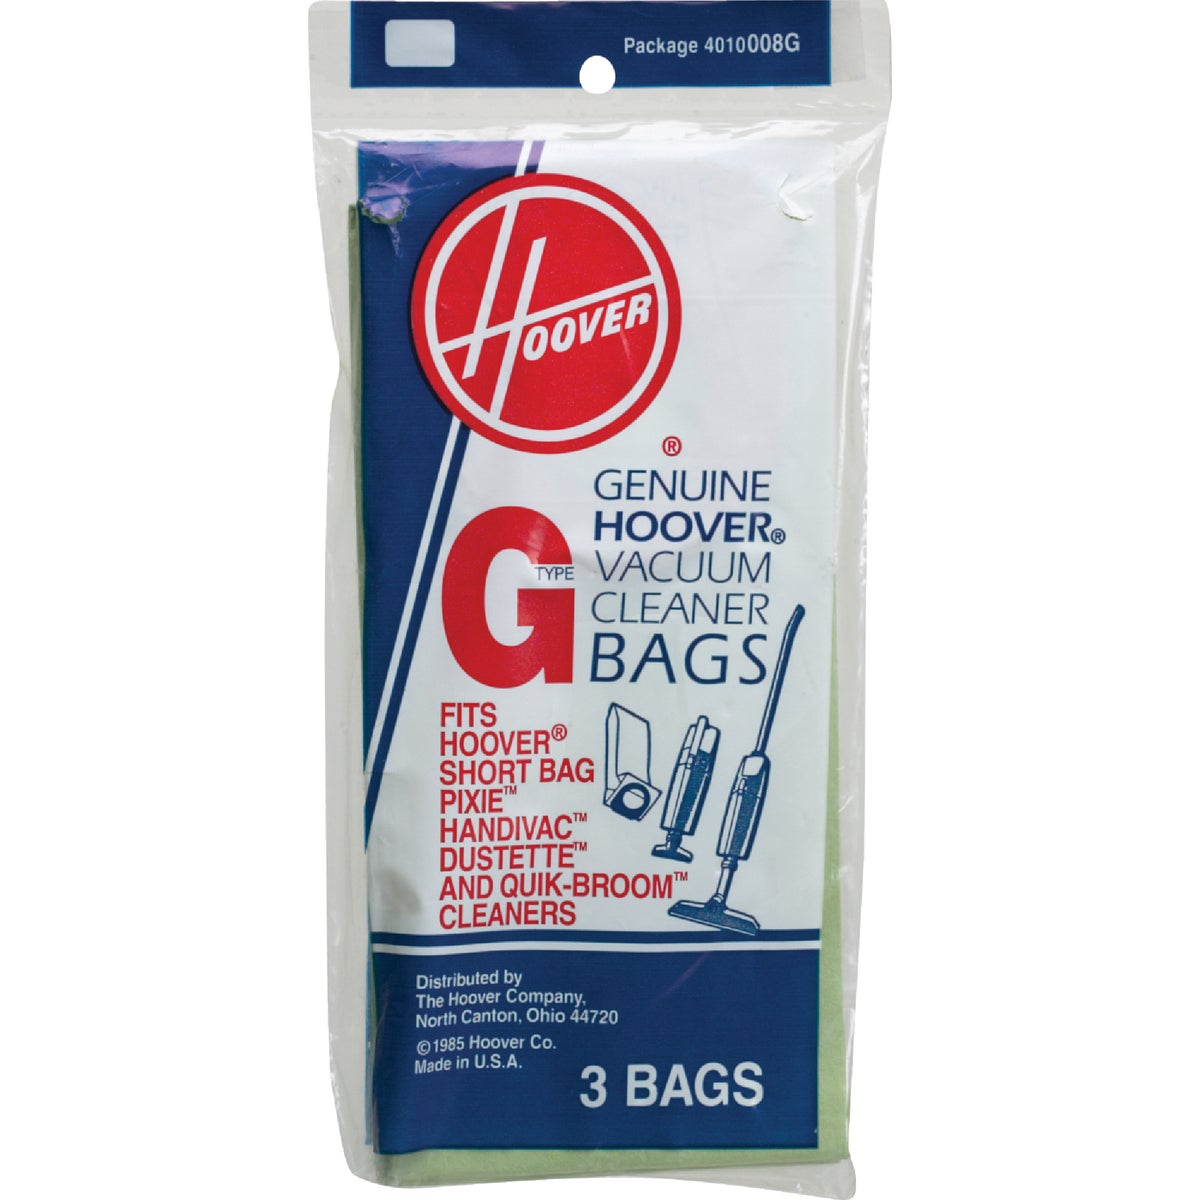 TYPE G VAC CLEANER BAG